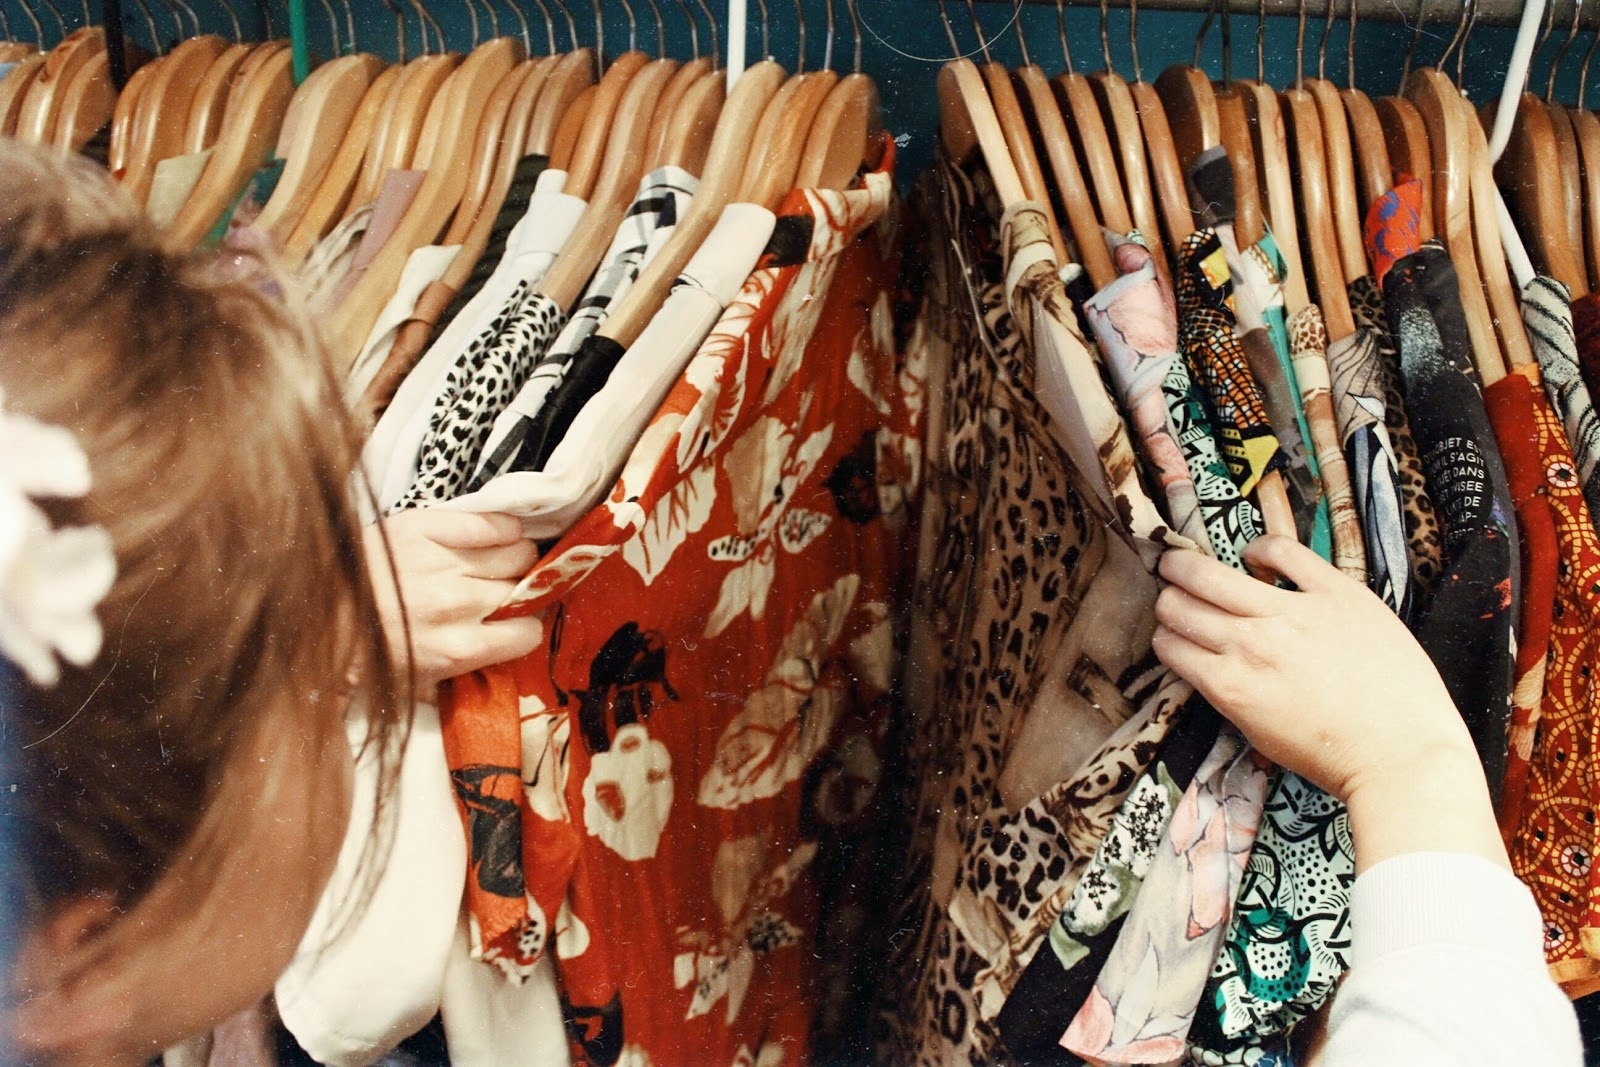 a lady browsing a clothes rack